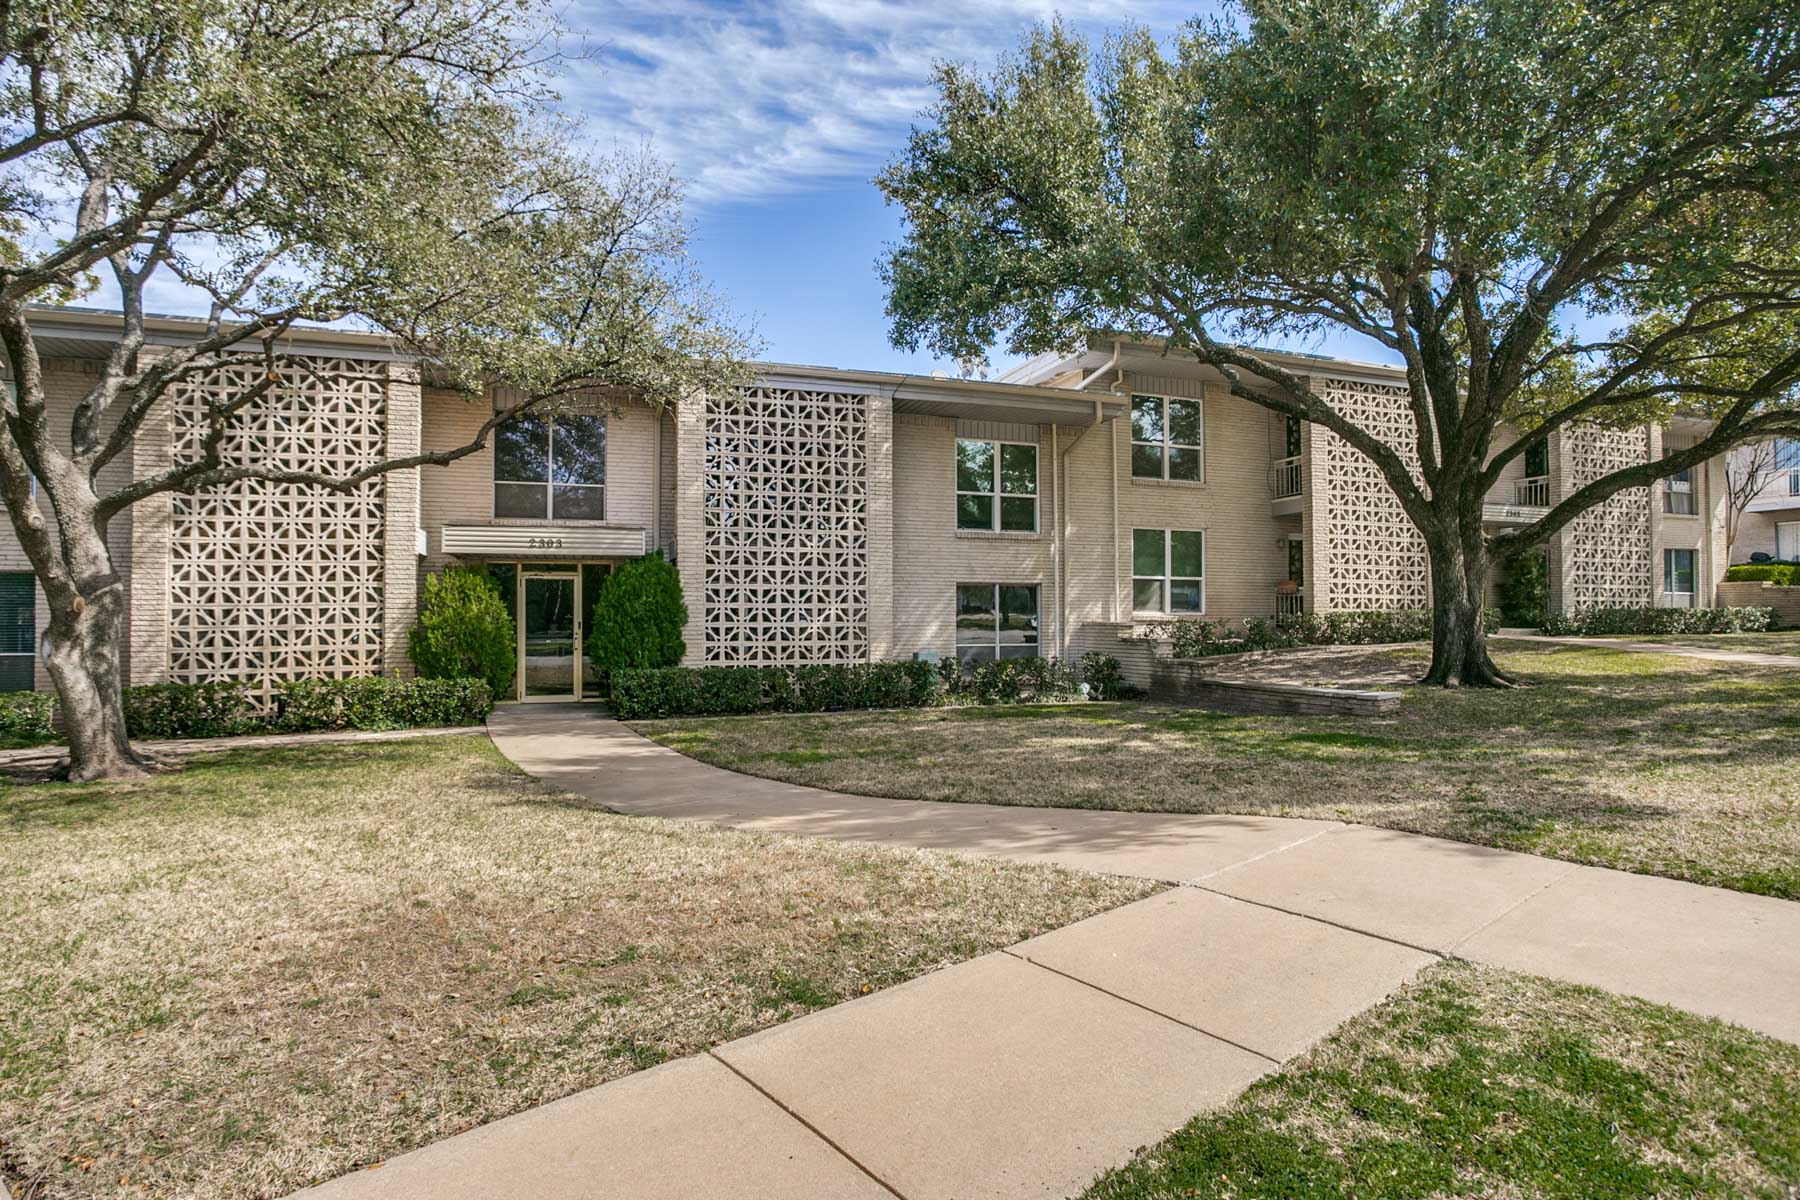 Single Family Home for Sale at 2303 Ridgmar Plaza 29-LEASE, Fort Worth Fort Worth, Texas, 76116 United States